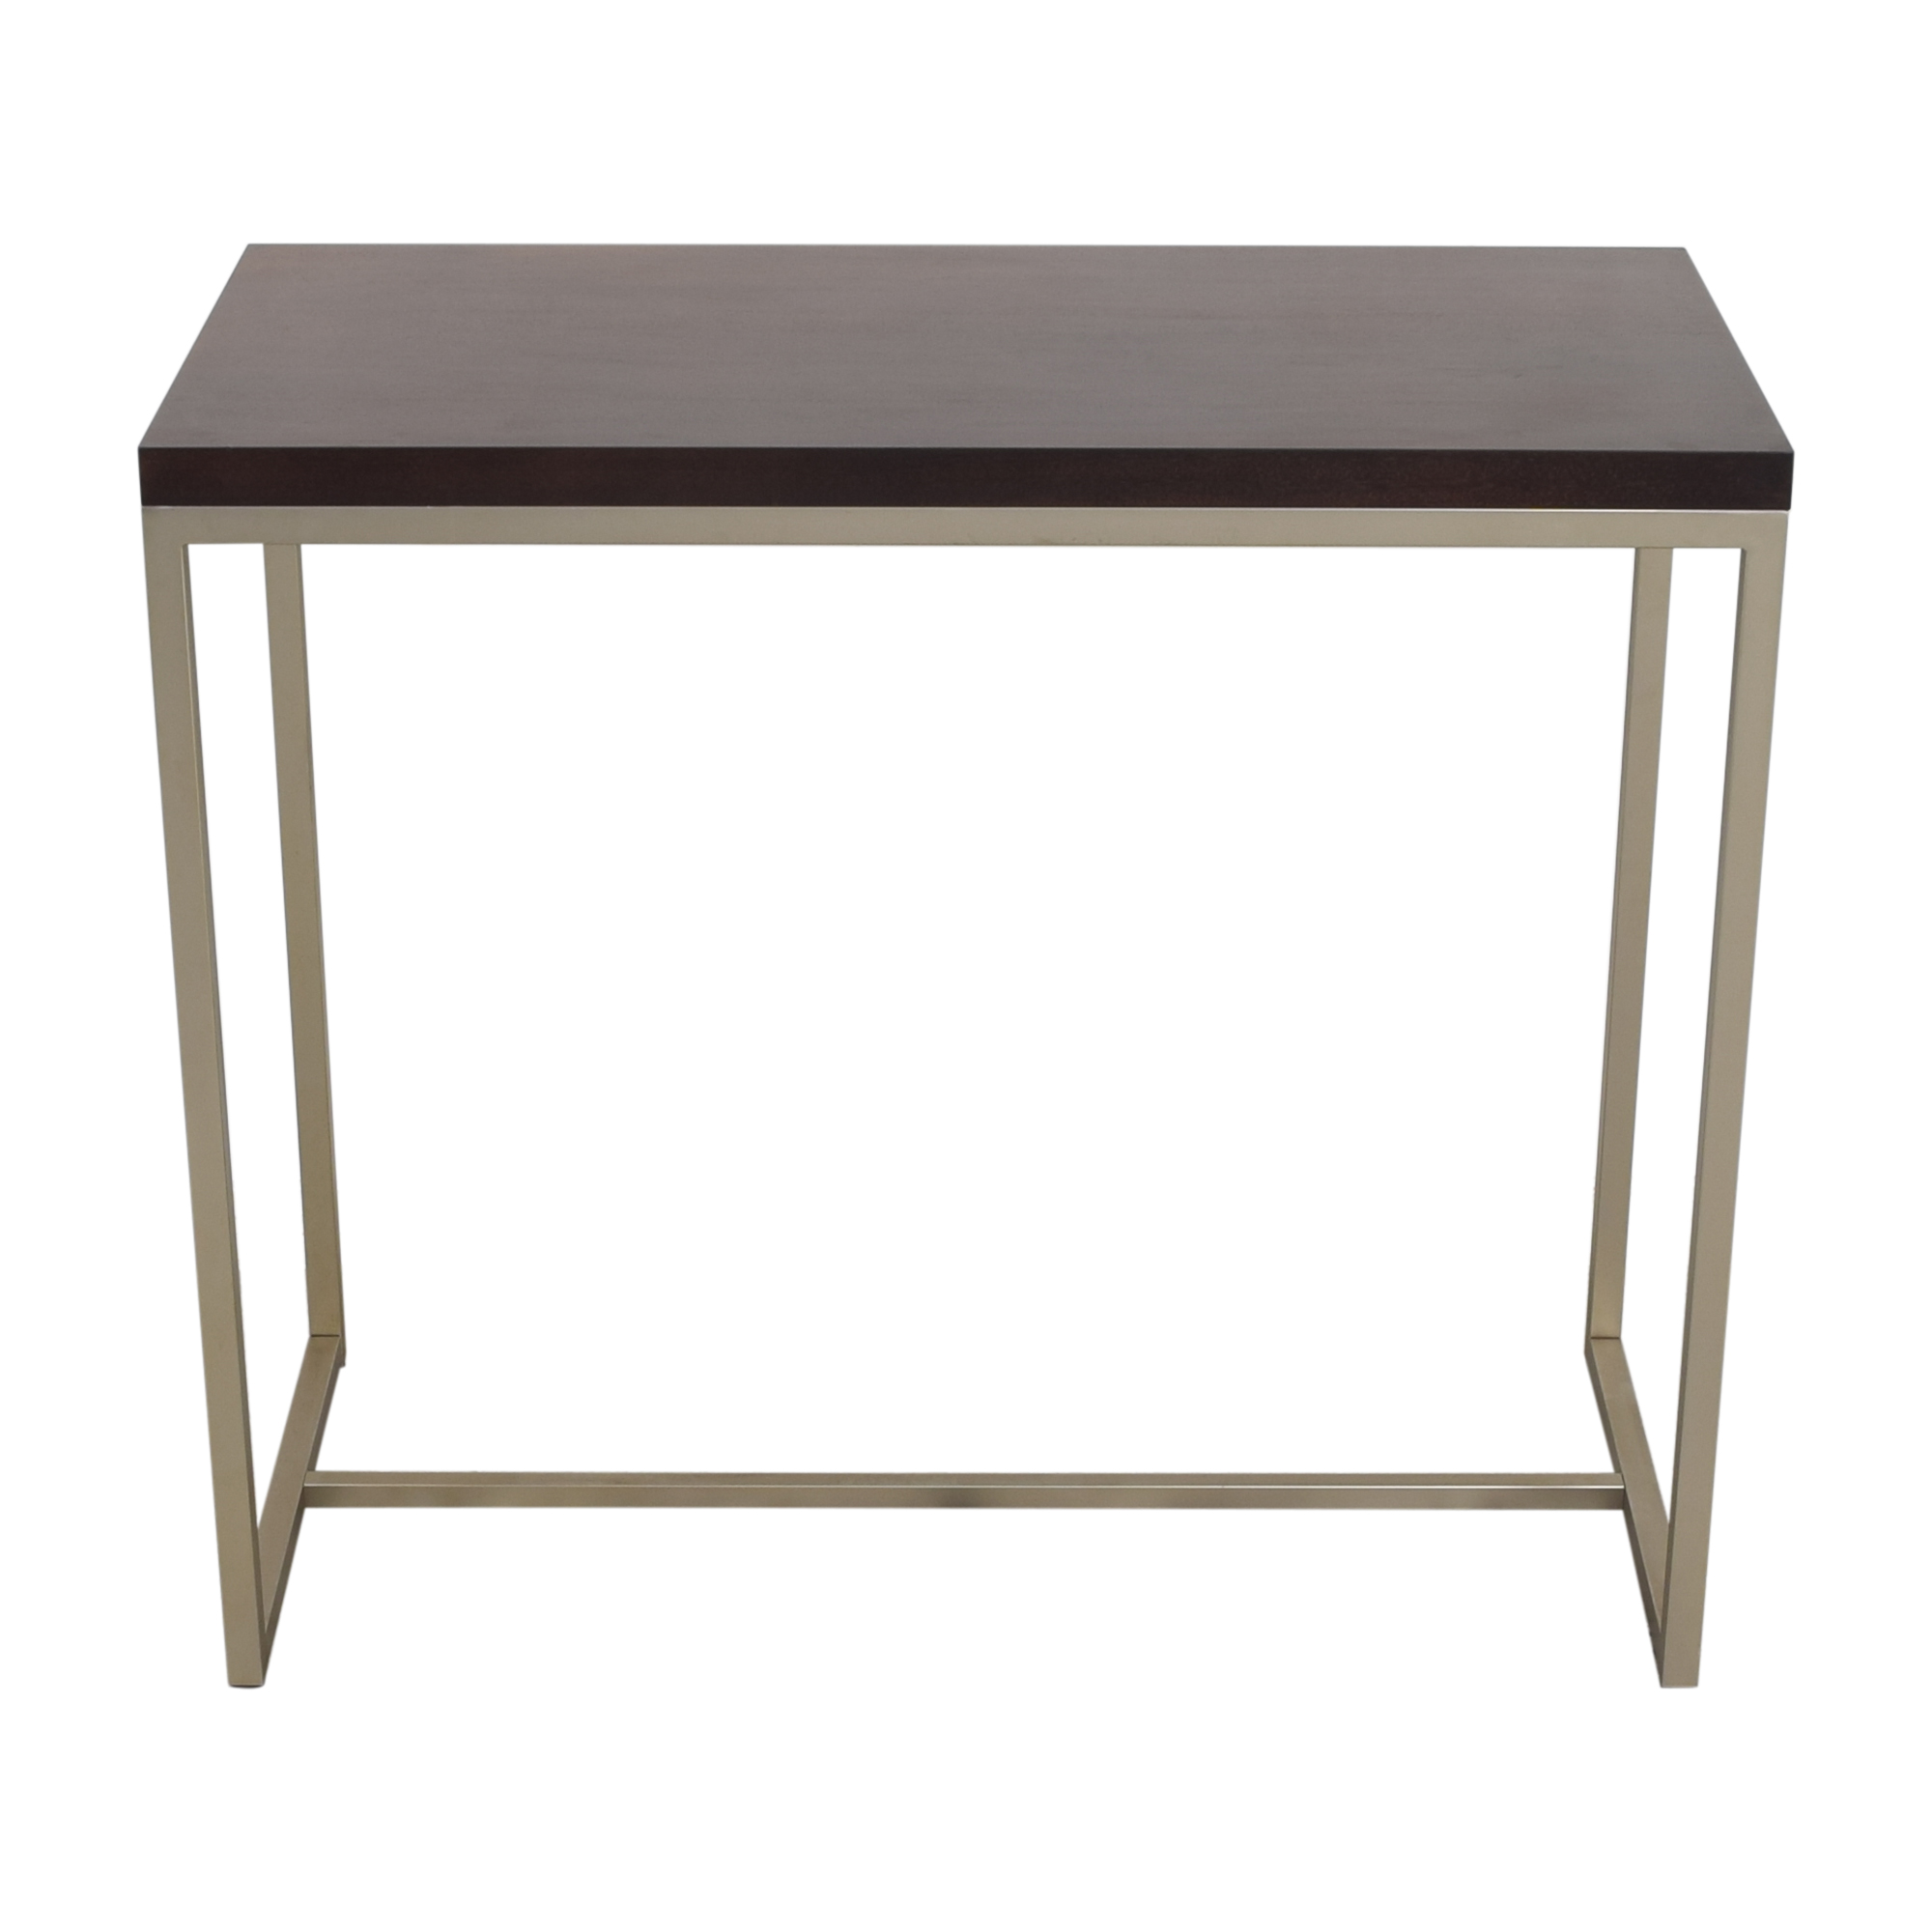 shop CB2 Box Frame Dining Table CB2 Tables